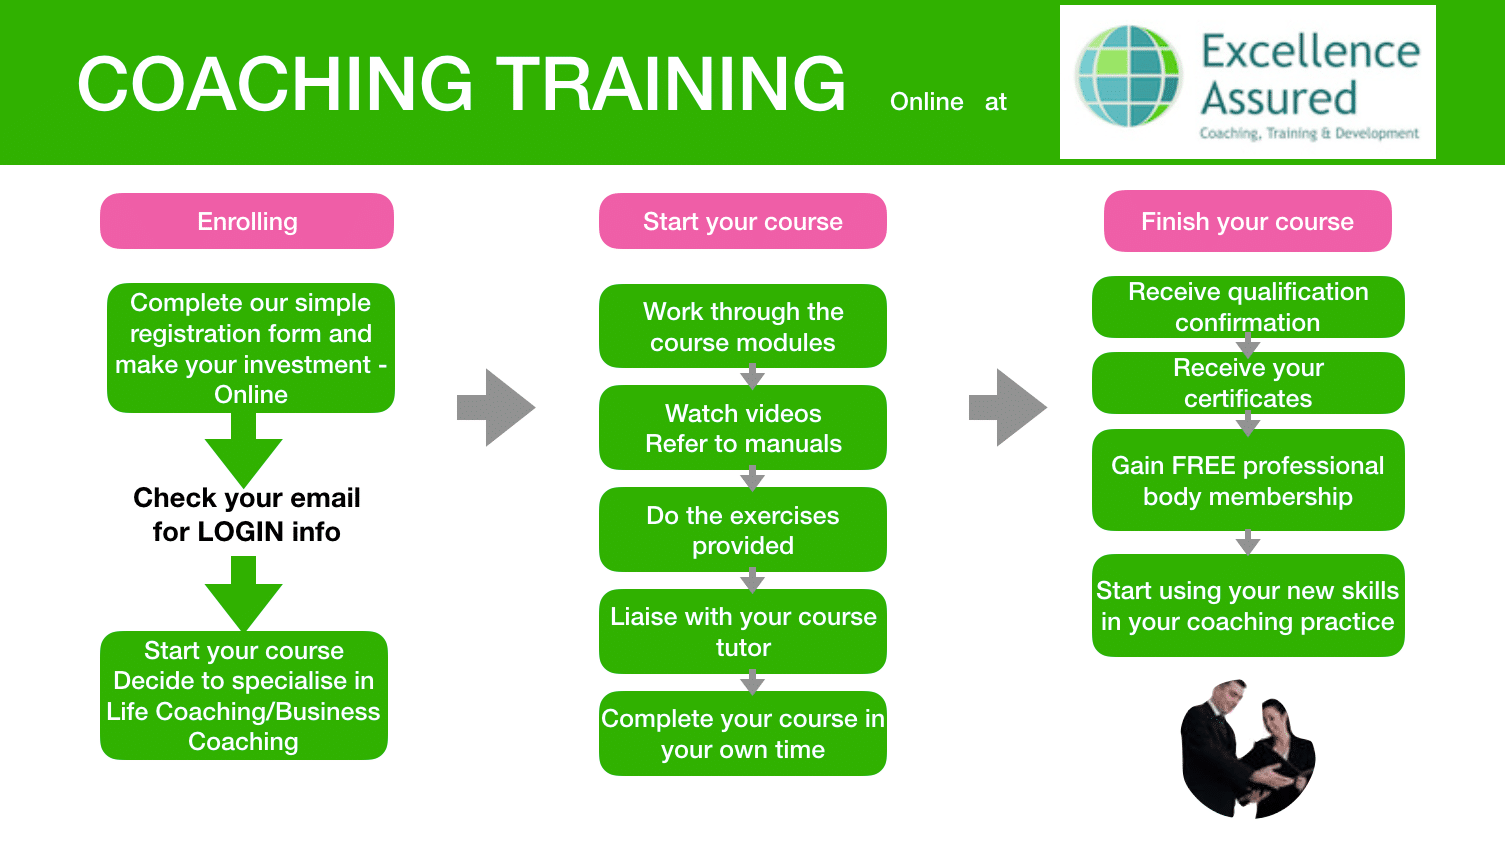 Coaching Training - online at Excellence Assured